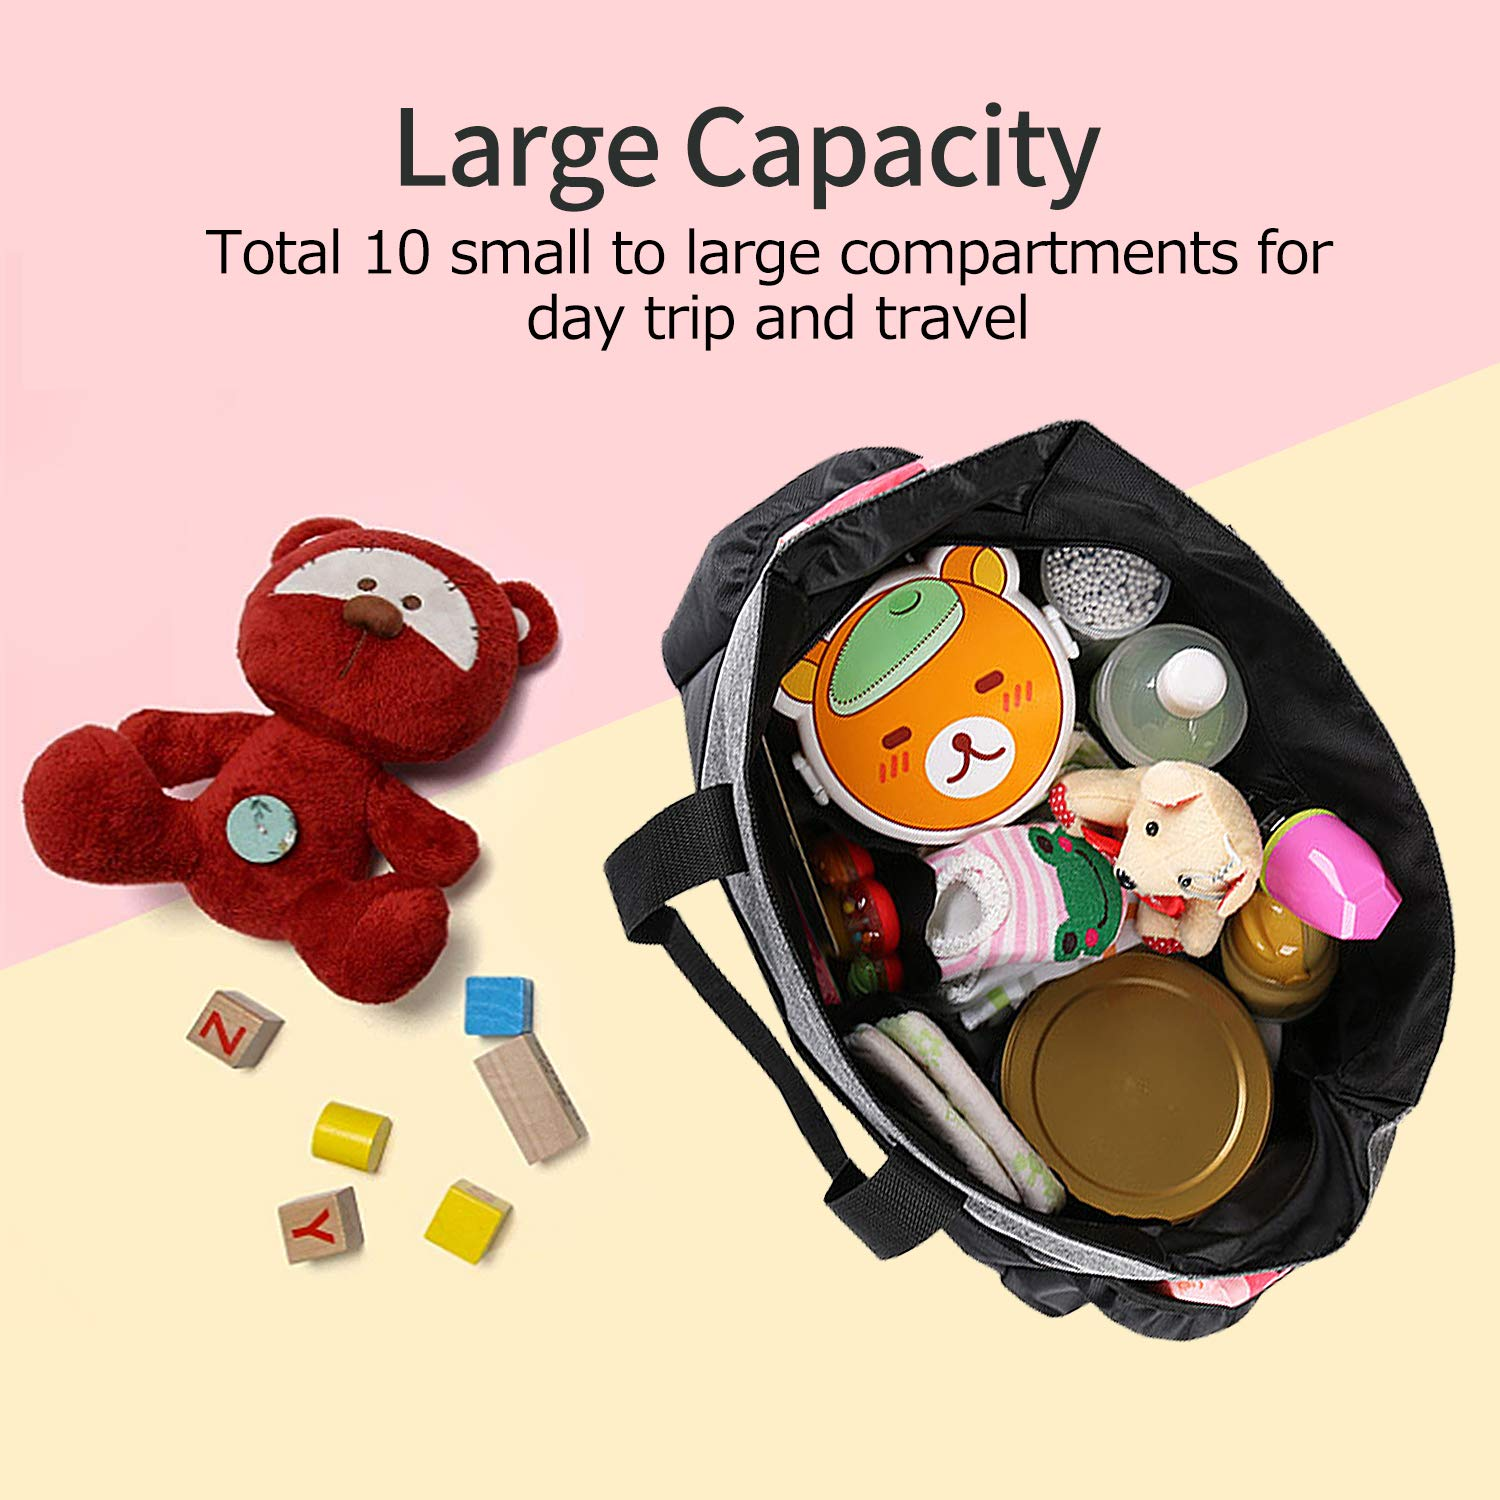 Redan Large Baby Bags Tote Organizer Insert Travel Nappy Bags Style with Shoulder Strap and 10 Pockets for Mom Stroller Boys and Girls Dad Diaper Bag Grey Black